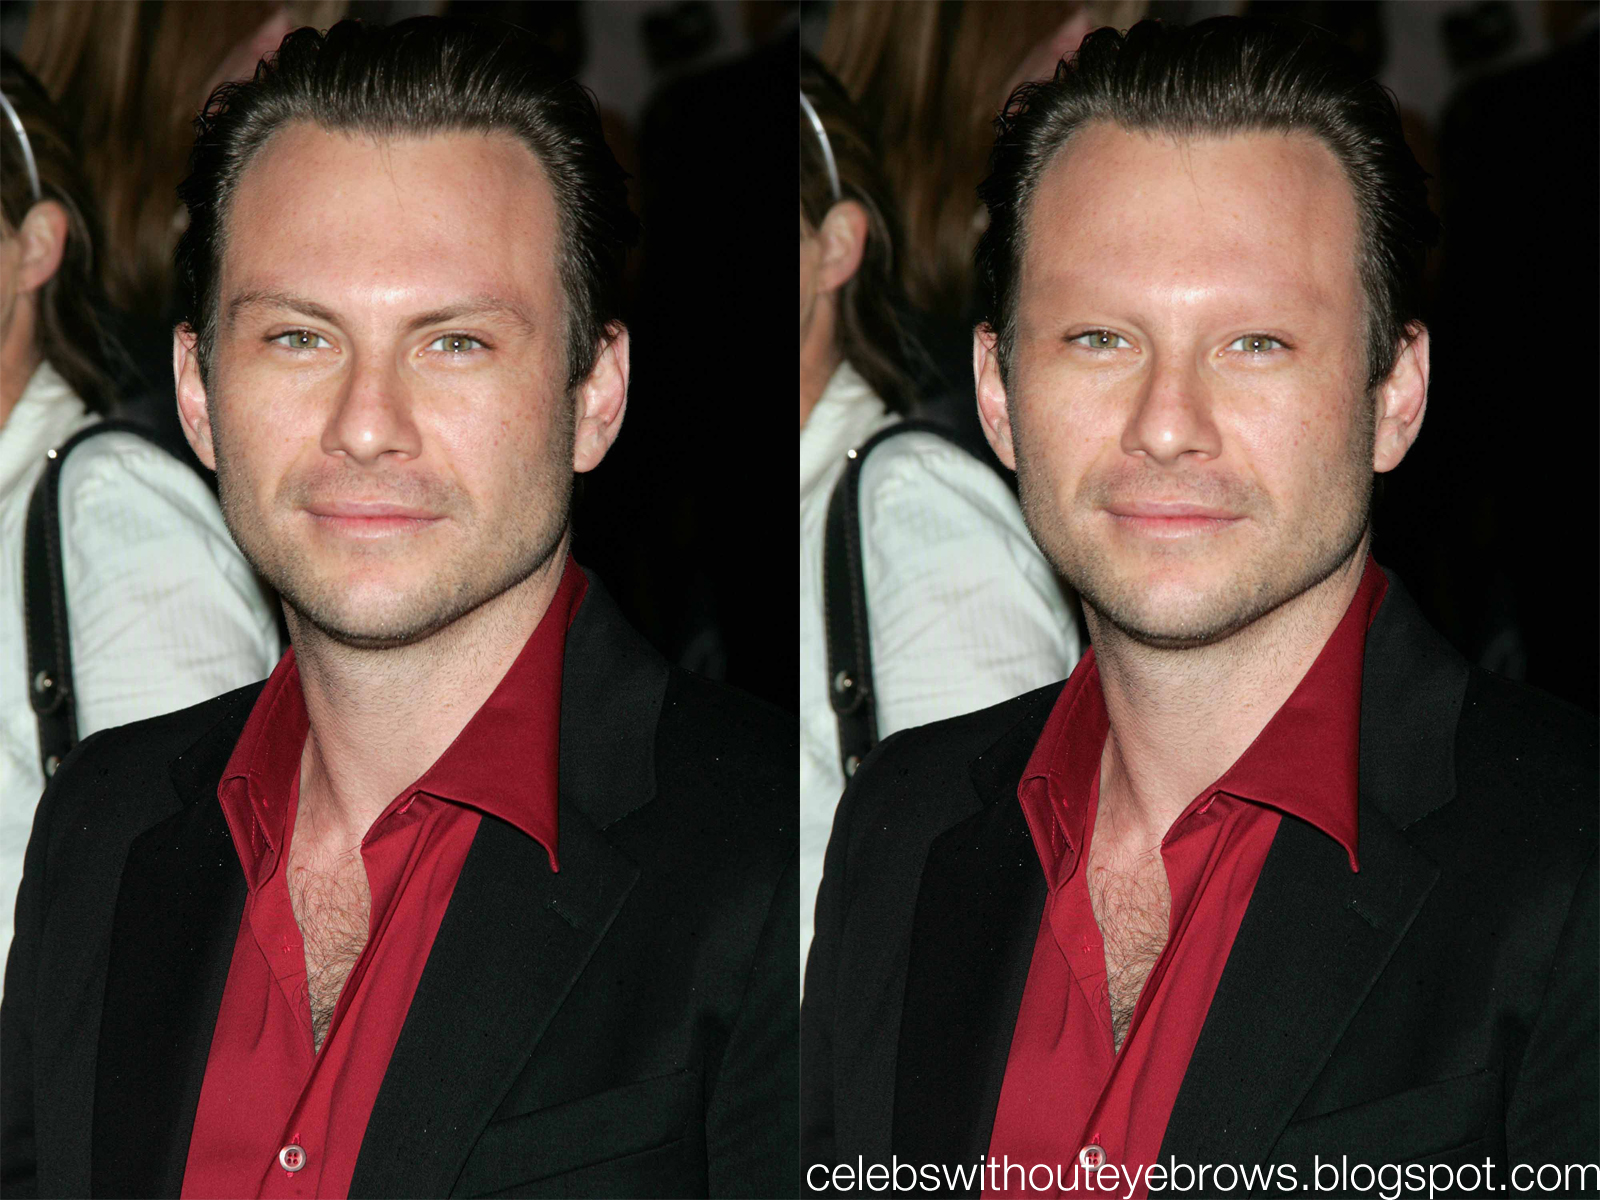 Celebs Without Eyebrows Christian Slater